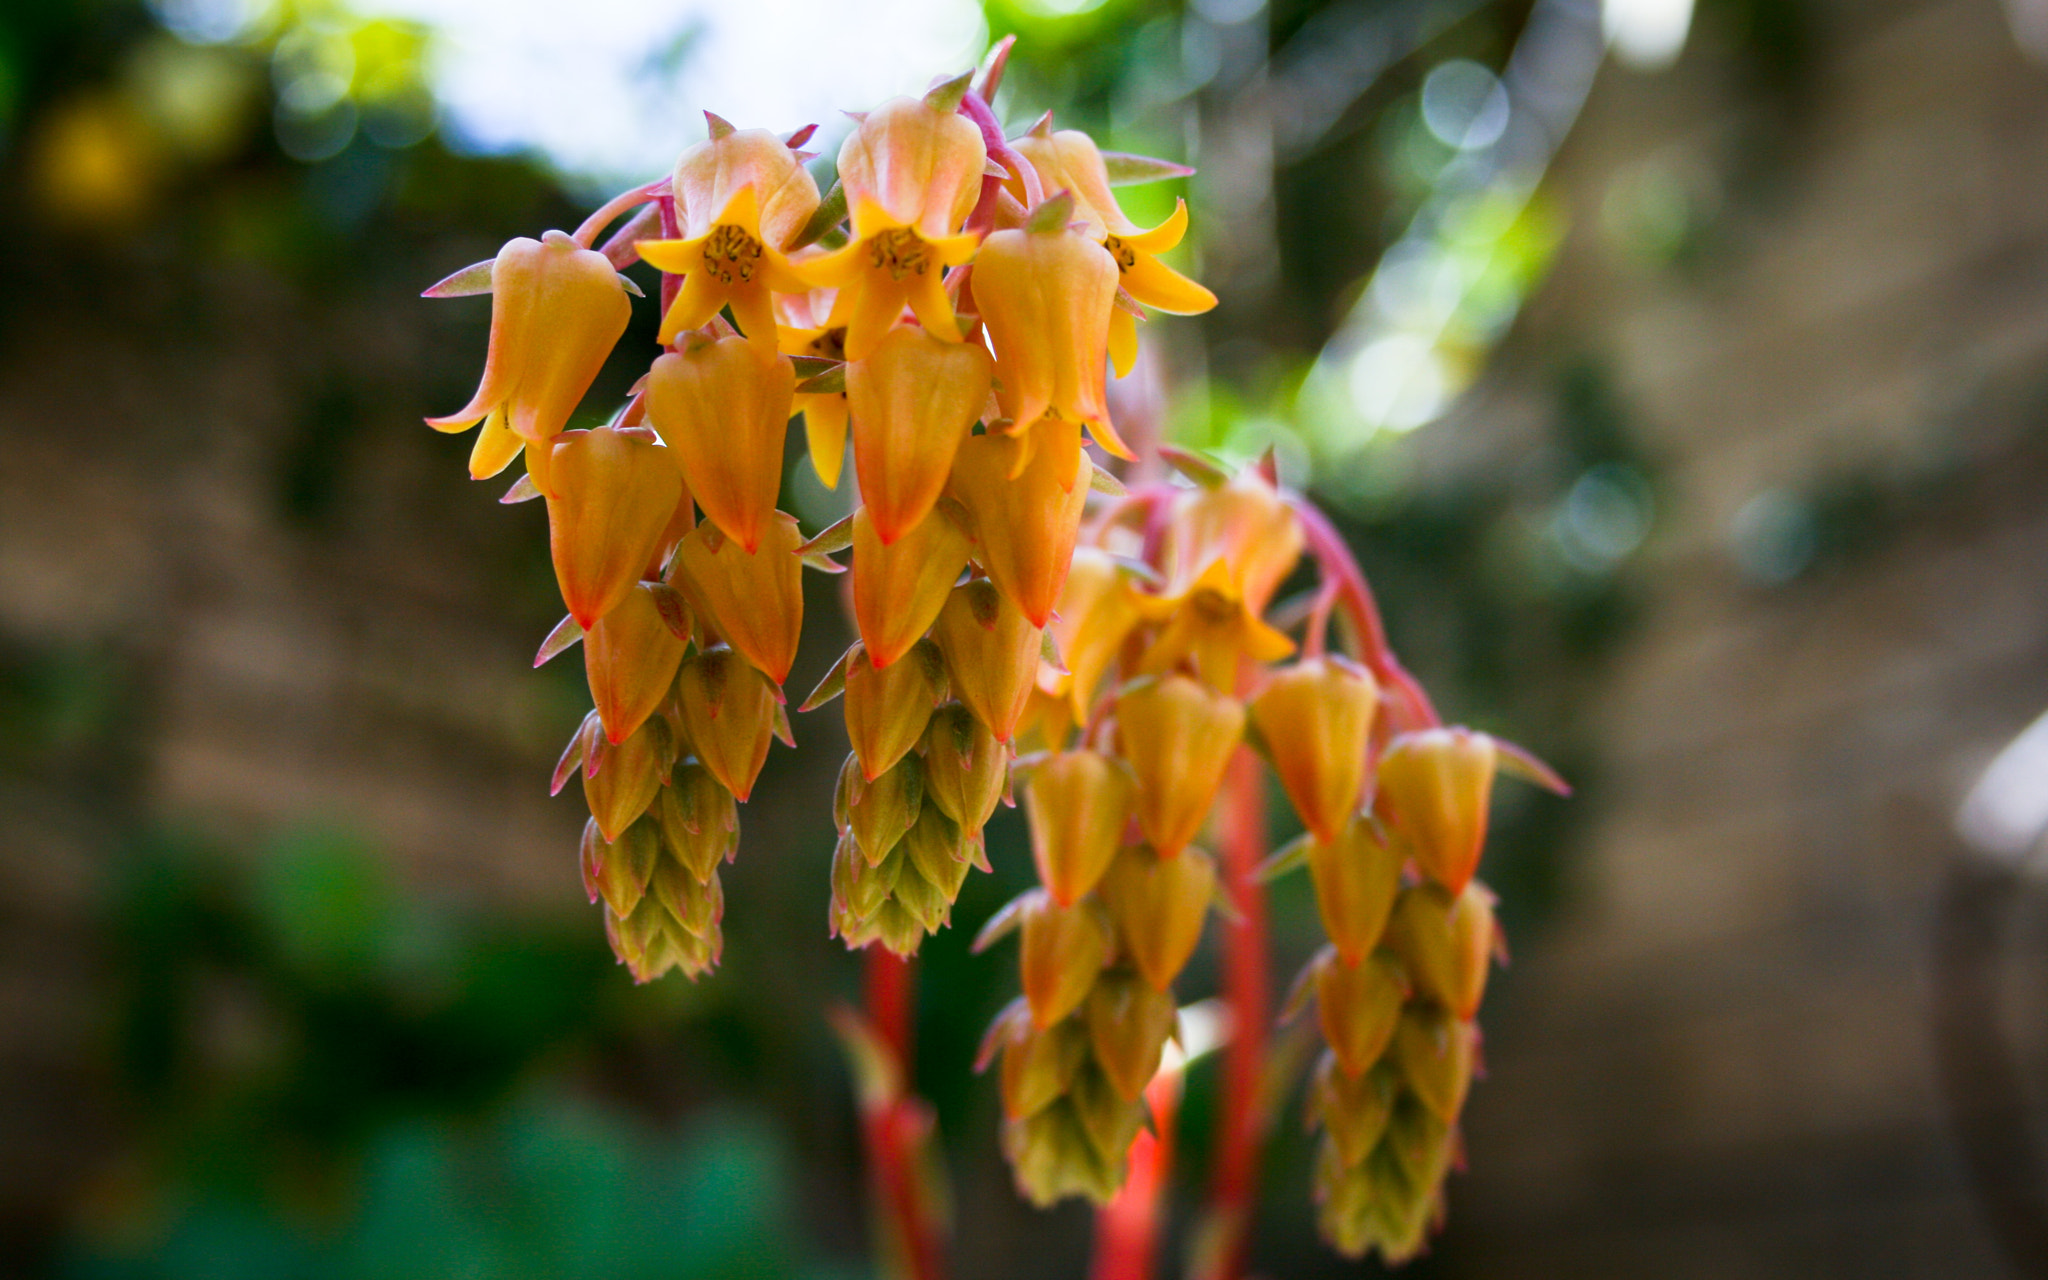 Photograph Golden Succulent Blossoms by Terry Majamaki on 500px